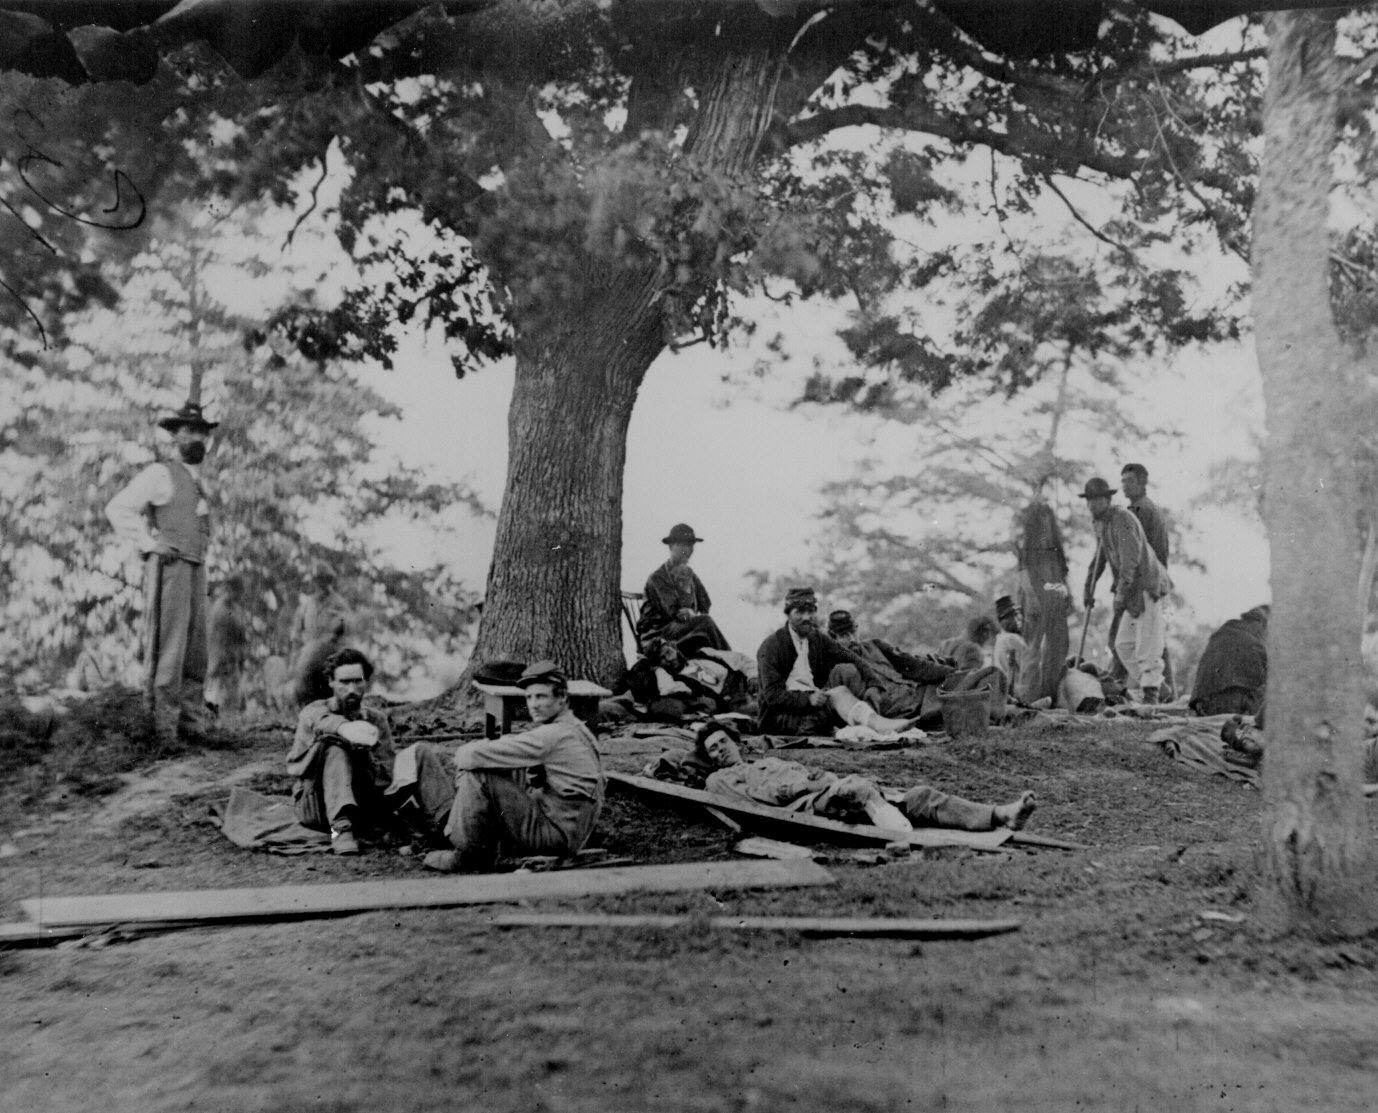 American Photography Digital Photograph Civil War Field of Gettysburg 1865